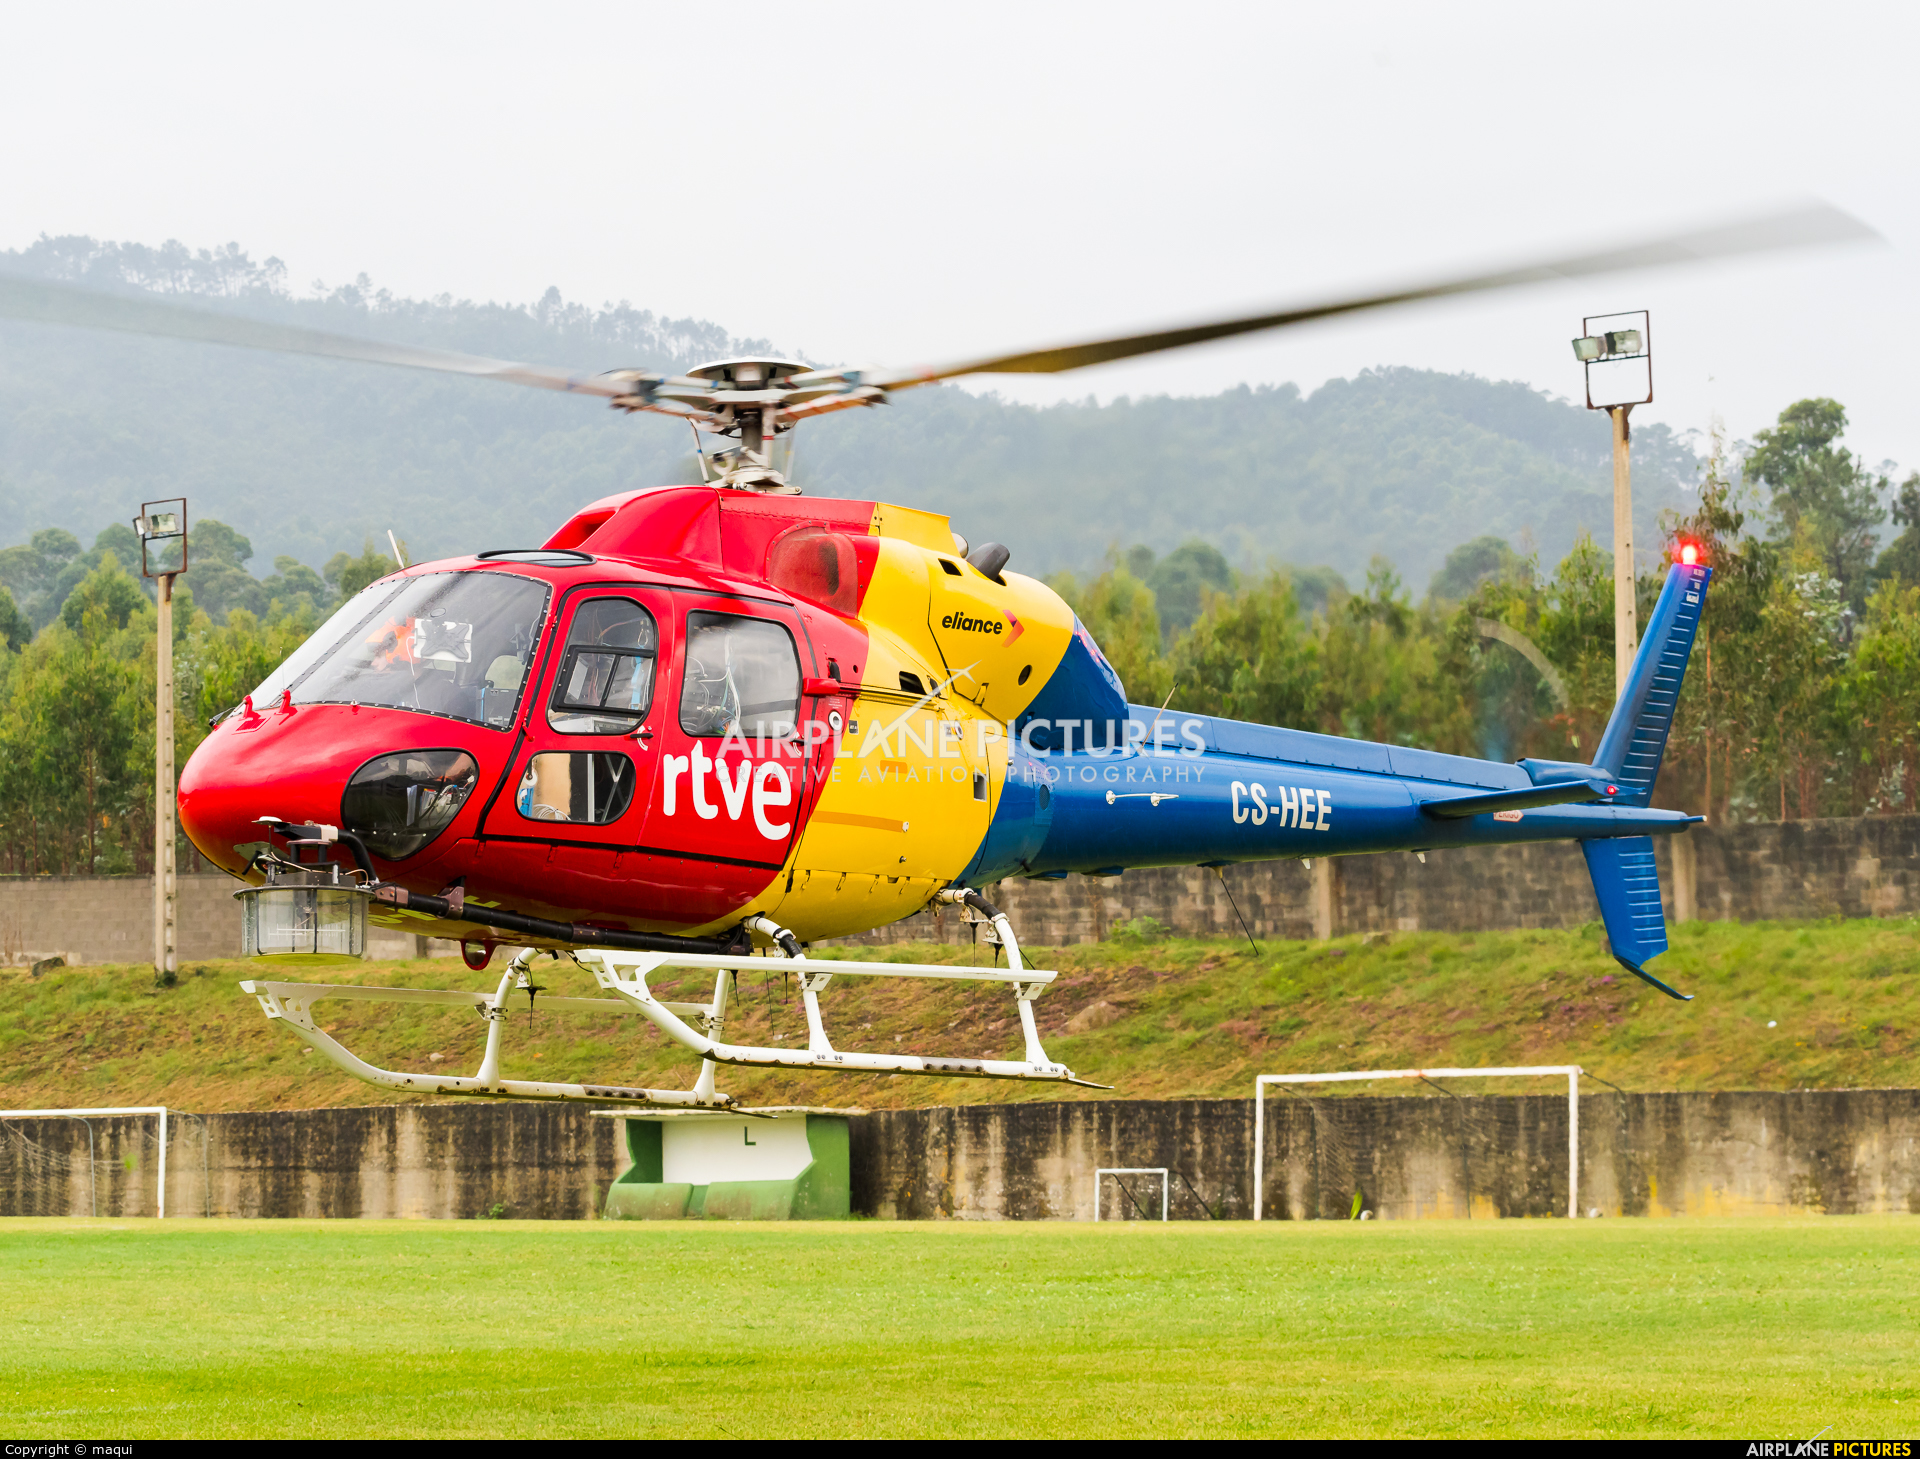 Eliance - Habock Aviation Group CS-HEE aircraft at Lugo - Off Airport